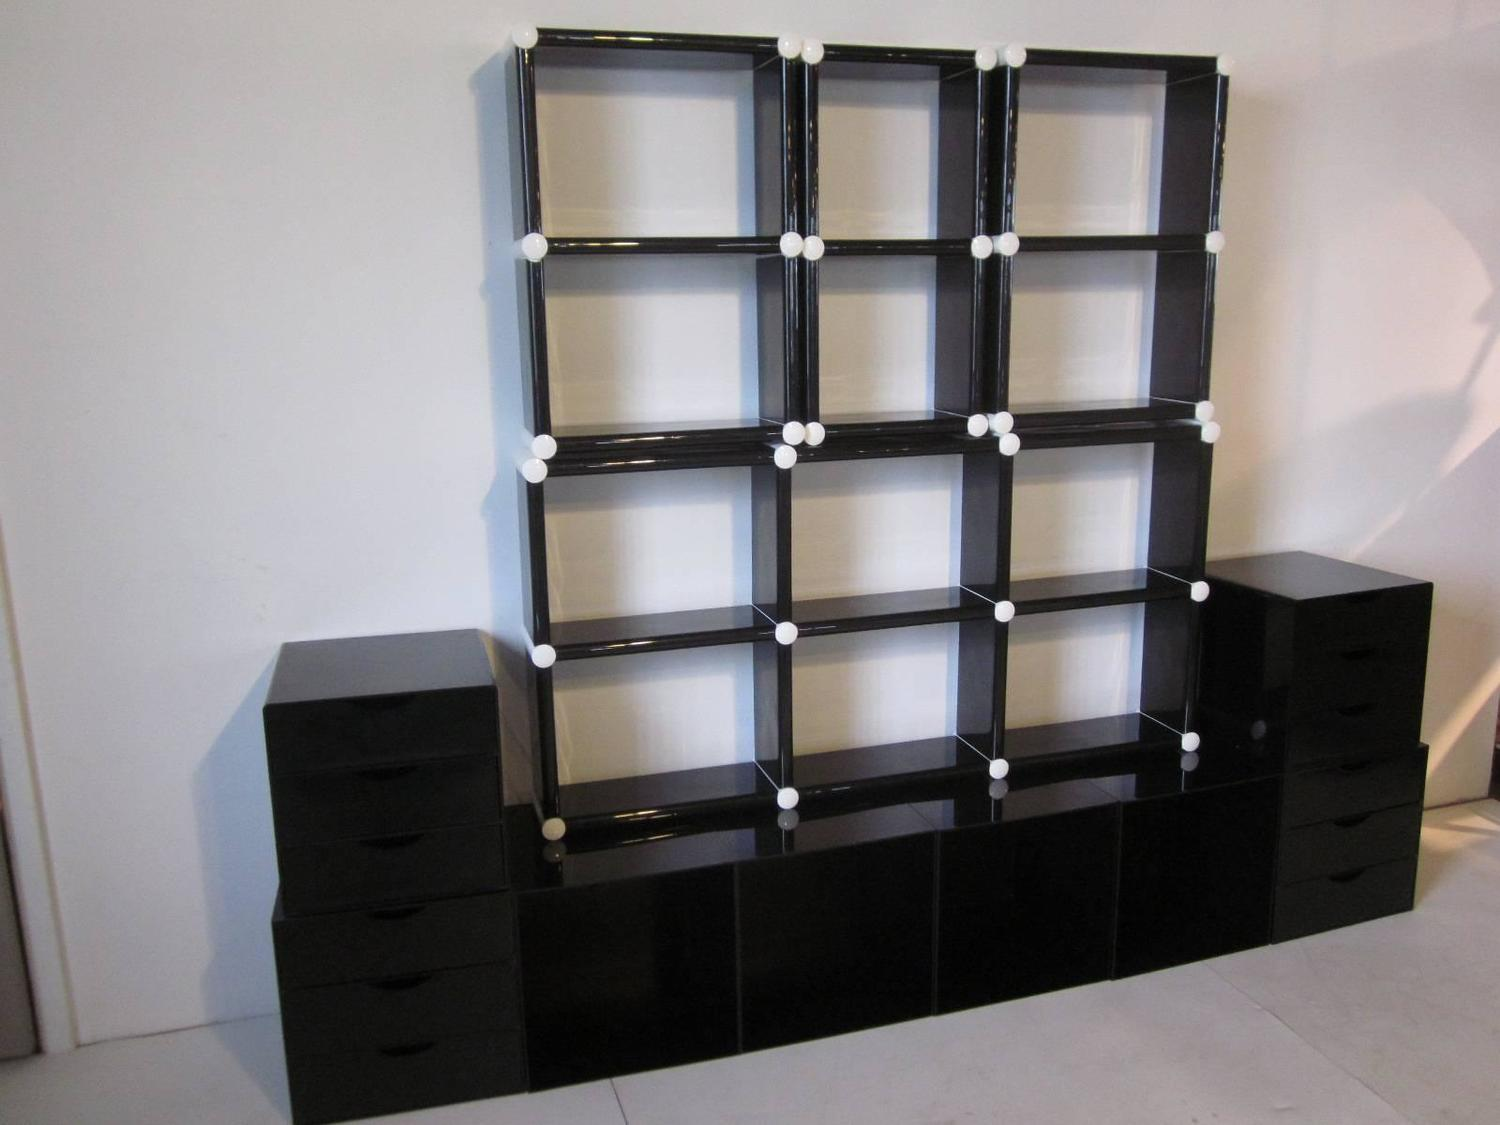 The 13 Surprisingly Bookcase With Storage Bins Cute Homes